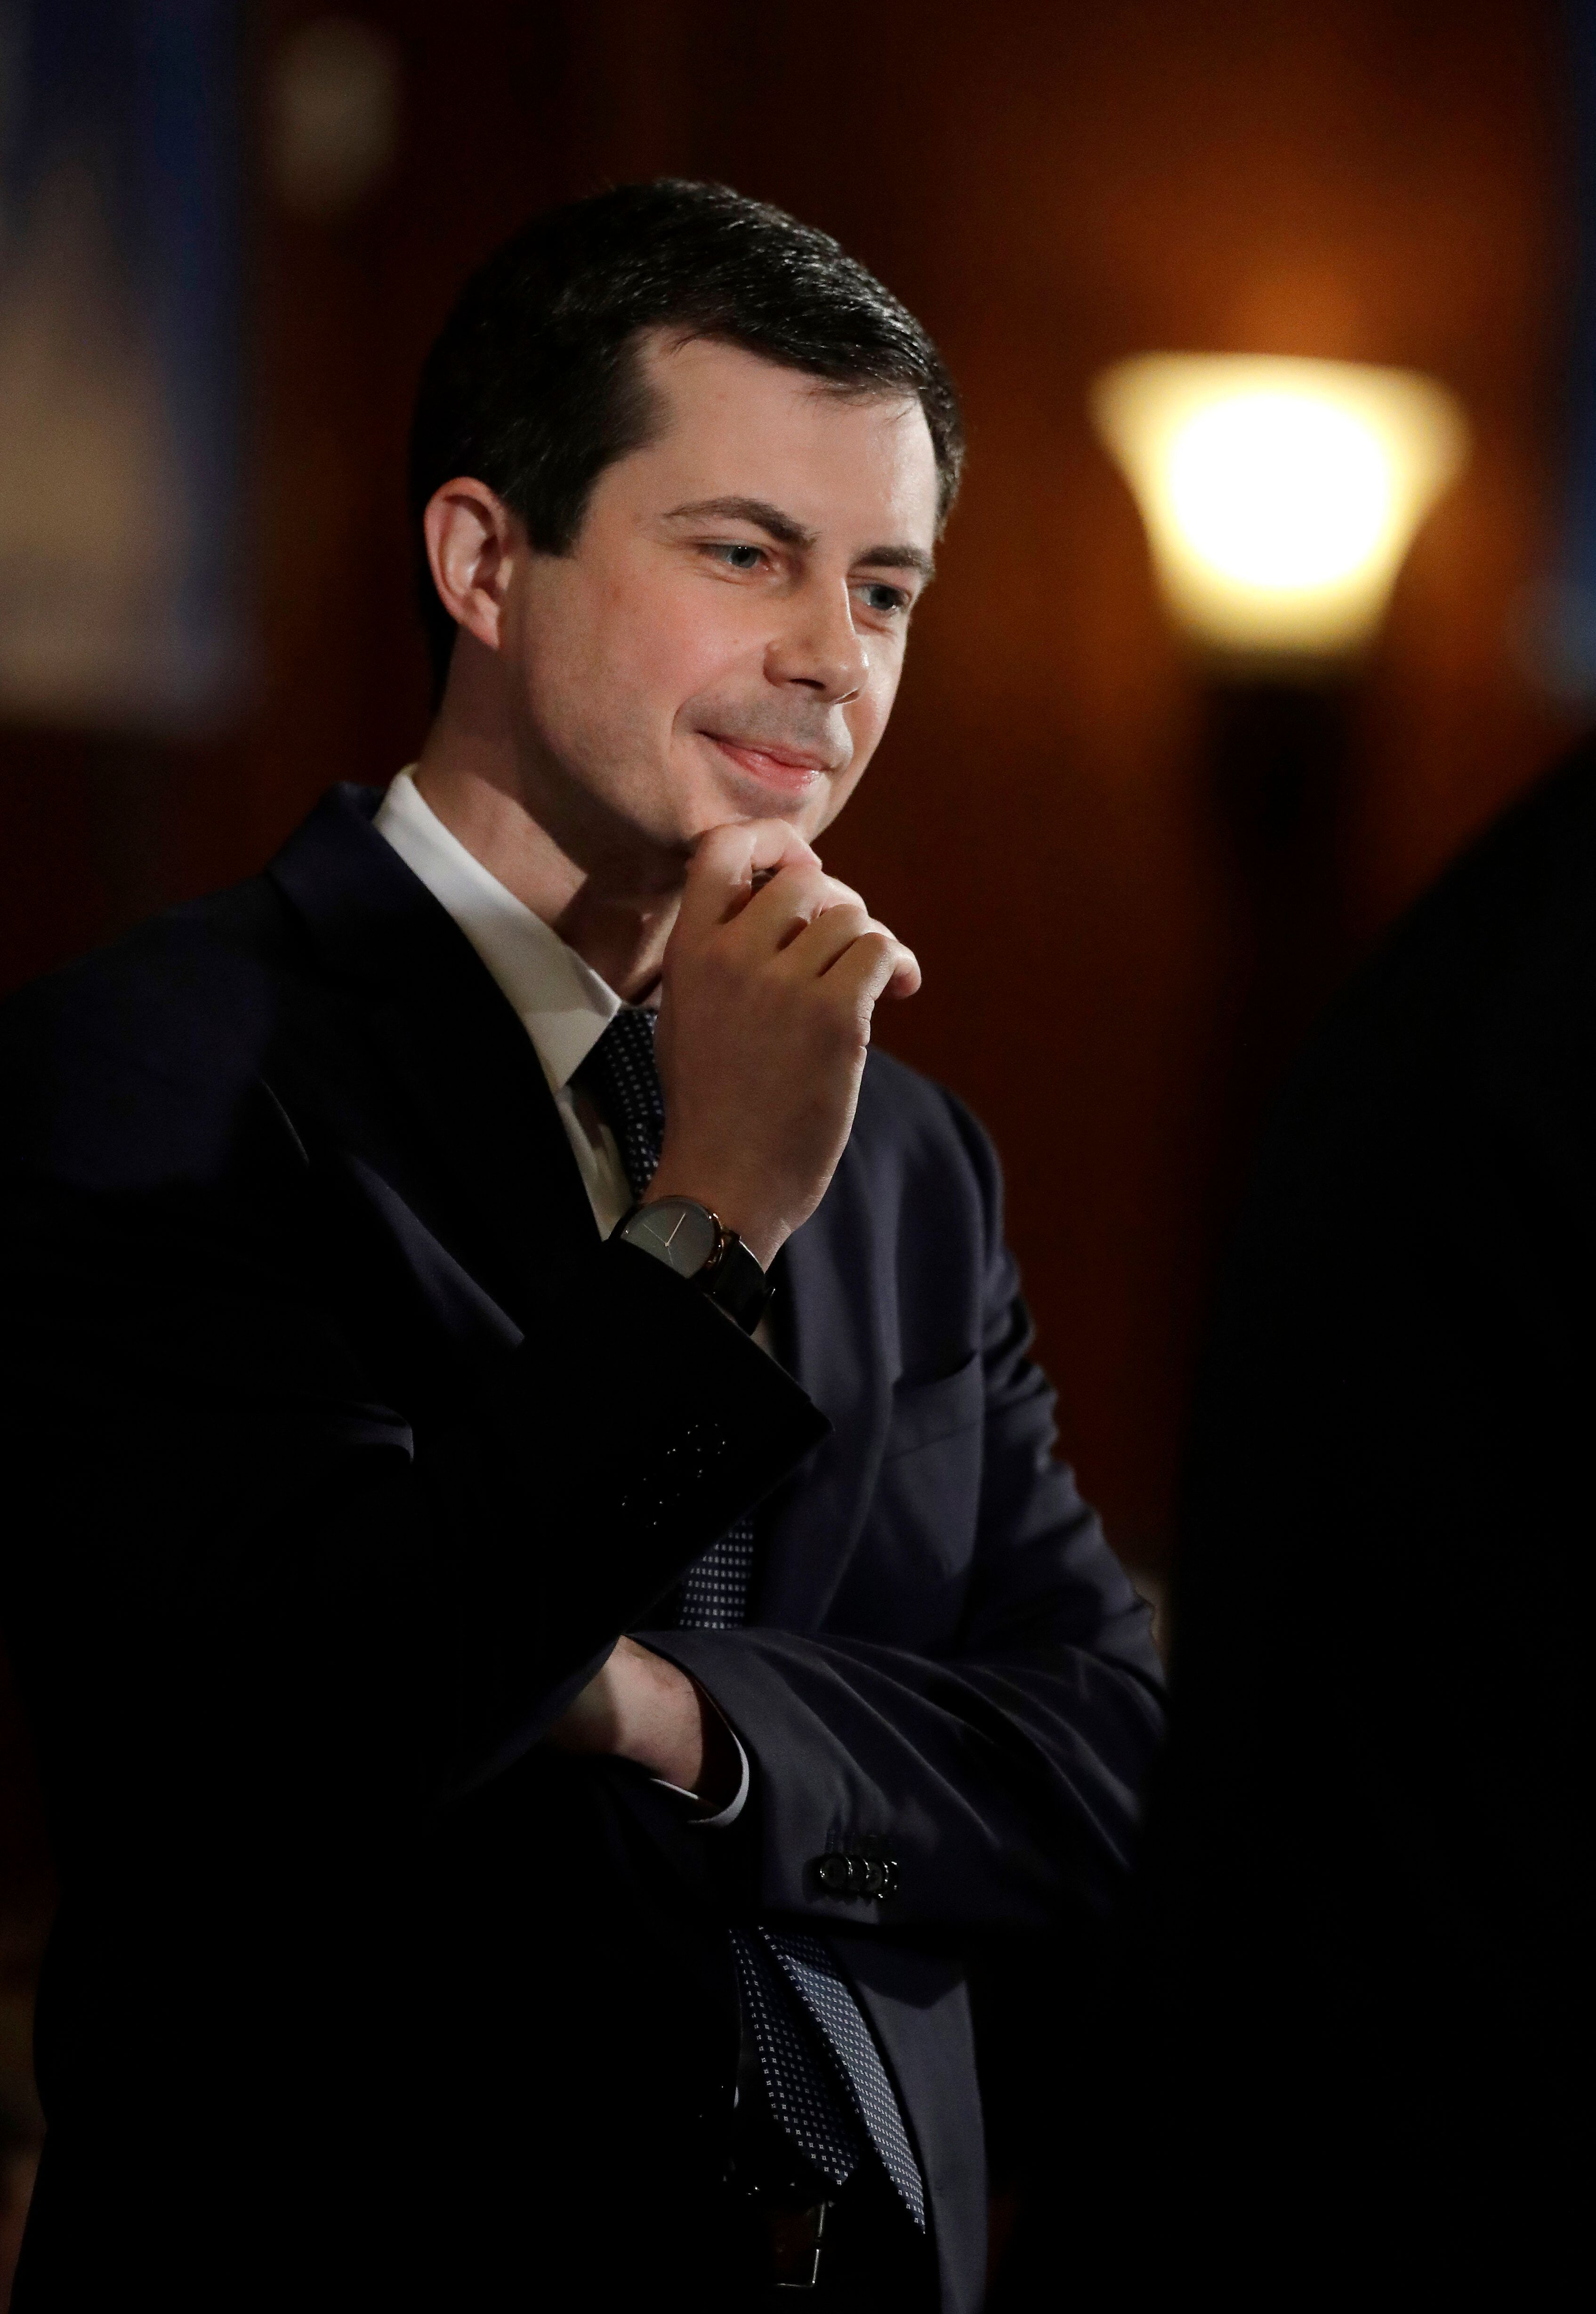 Democratic presidential candidate South Bend. Ind., Mayor Pete Buttigieg listens to a question after addressing the City Club of Chicago Thursday, May 16, 2019, in Chicago. (AP Photo/Charles Rex Arbogast)